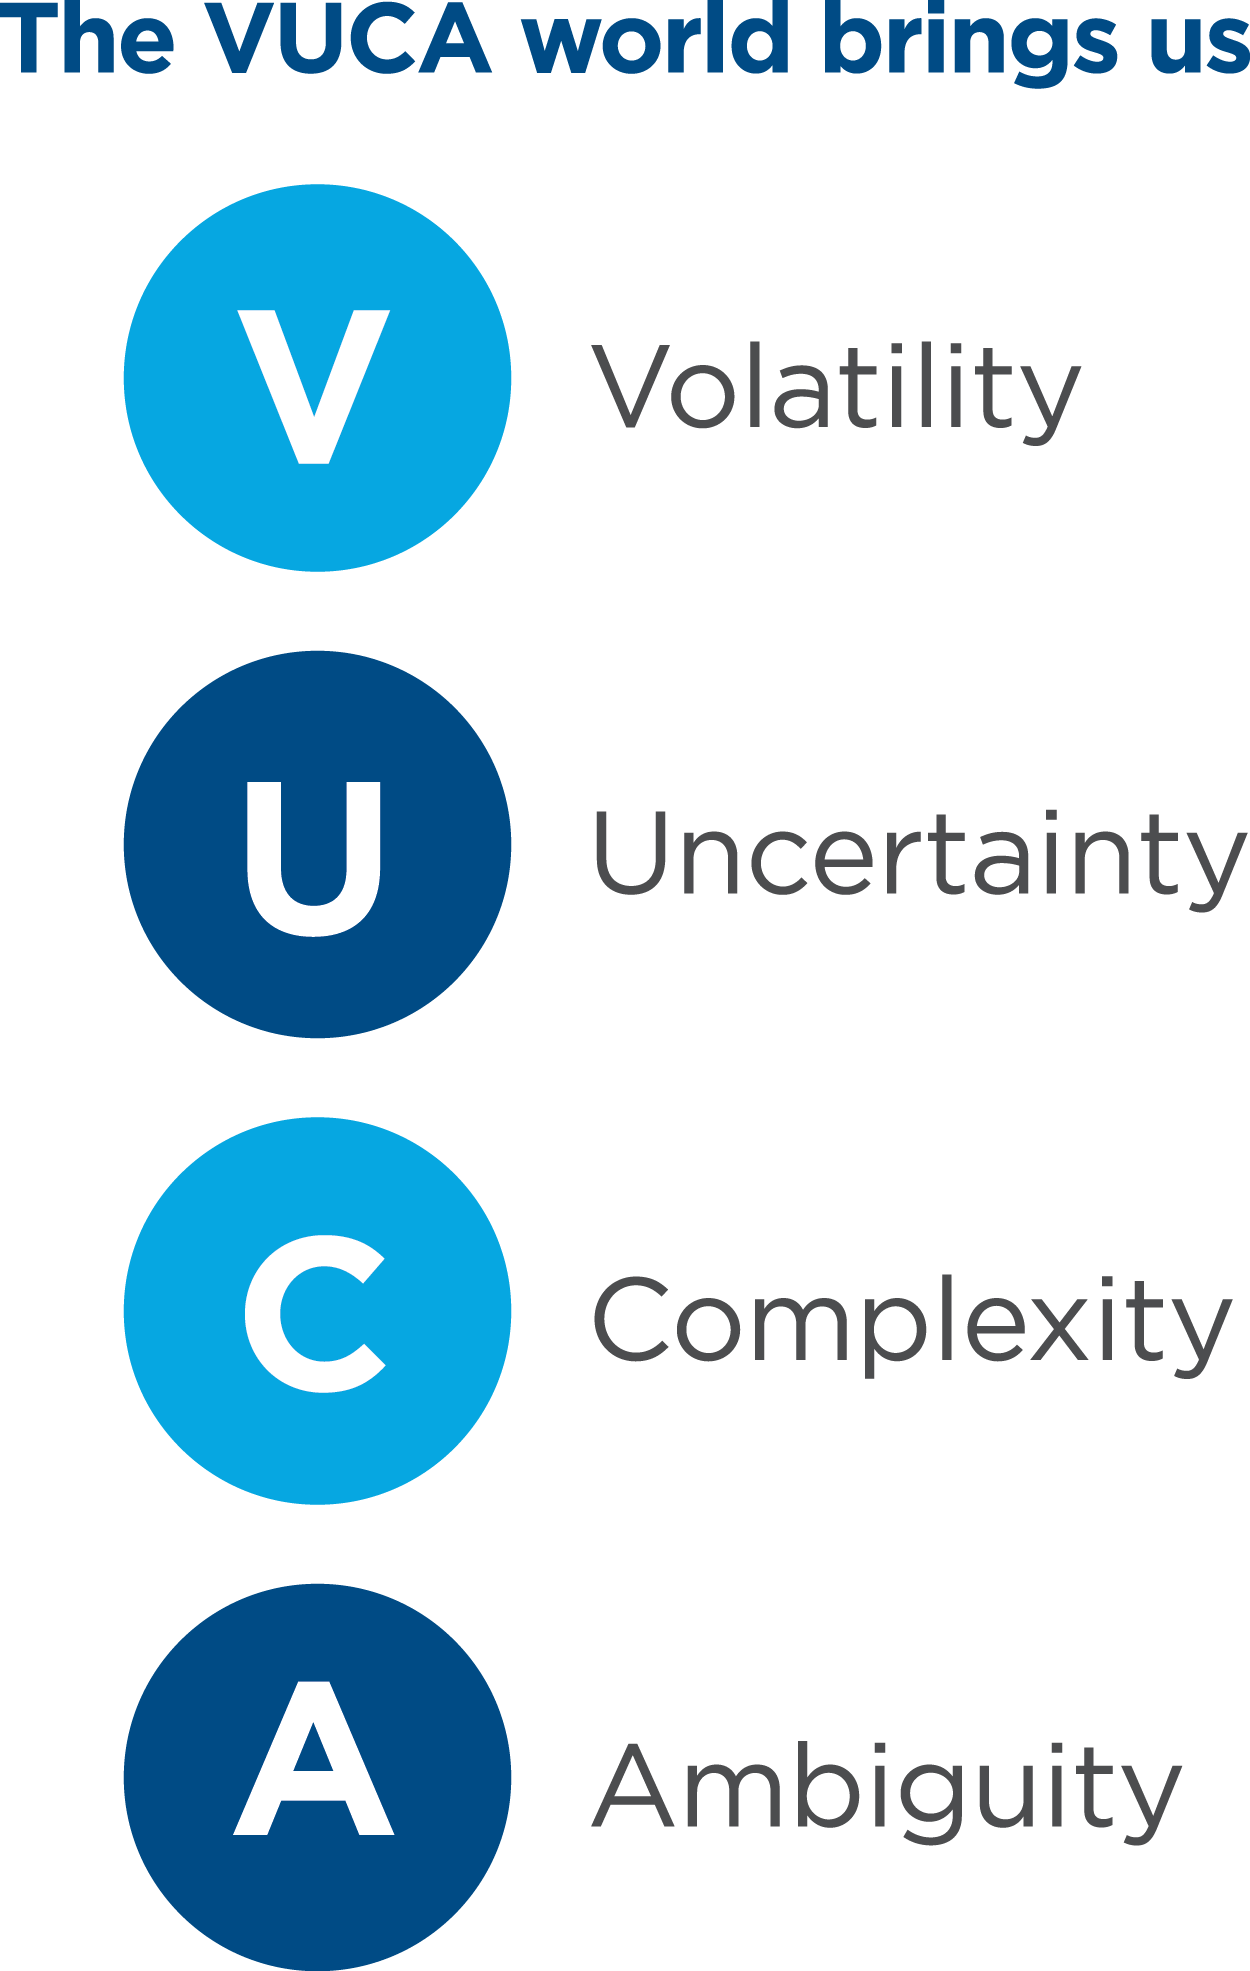 The VUCA world brings us: